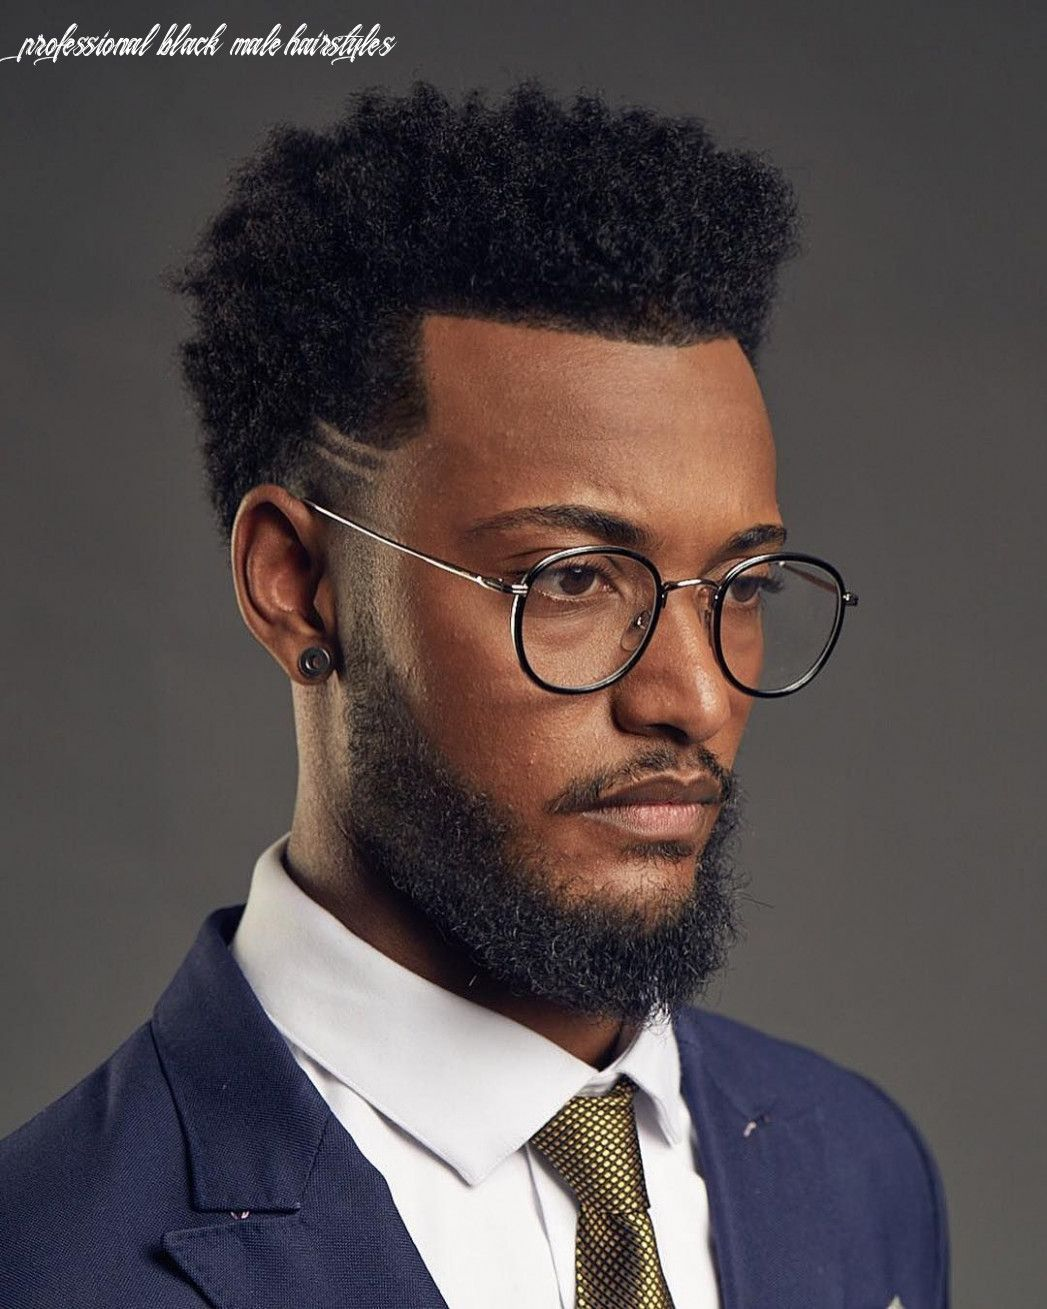 8 Professional Black Male Hairstyles In 2020 Business Hairstyles Professional Hairstyles For Men Professional Hairstyles